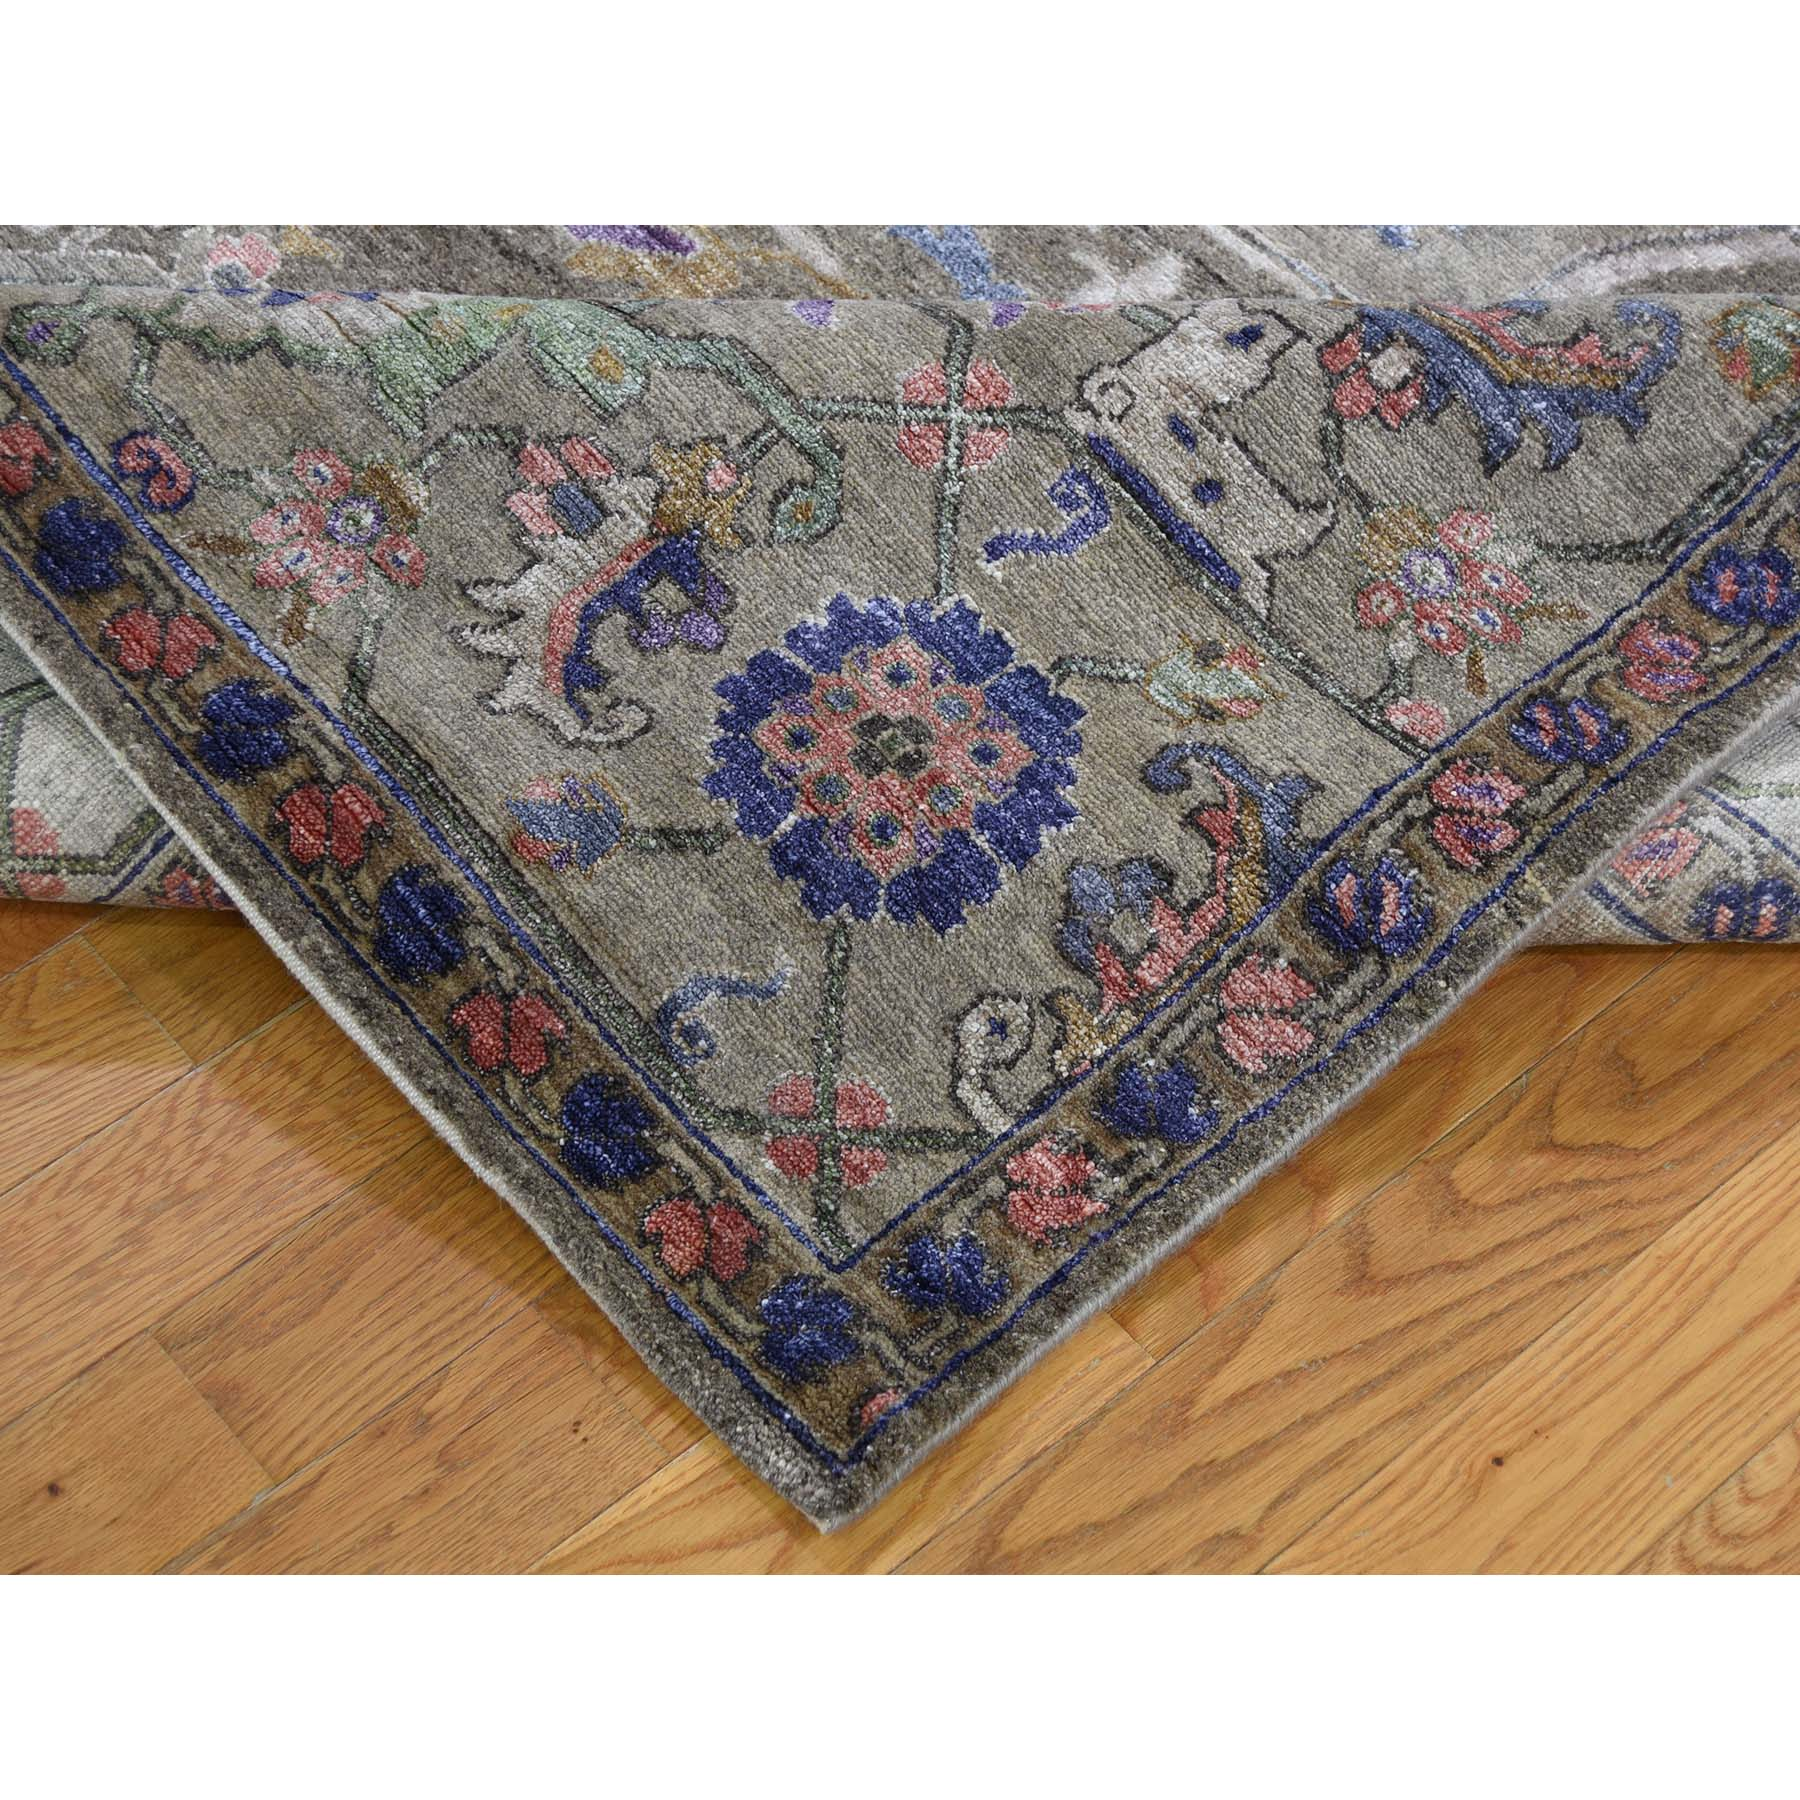 8-8 x11-10  Hand-Knotted Wool And Silk Heriz Design Thick And Plush Oriental Rug